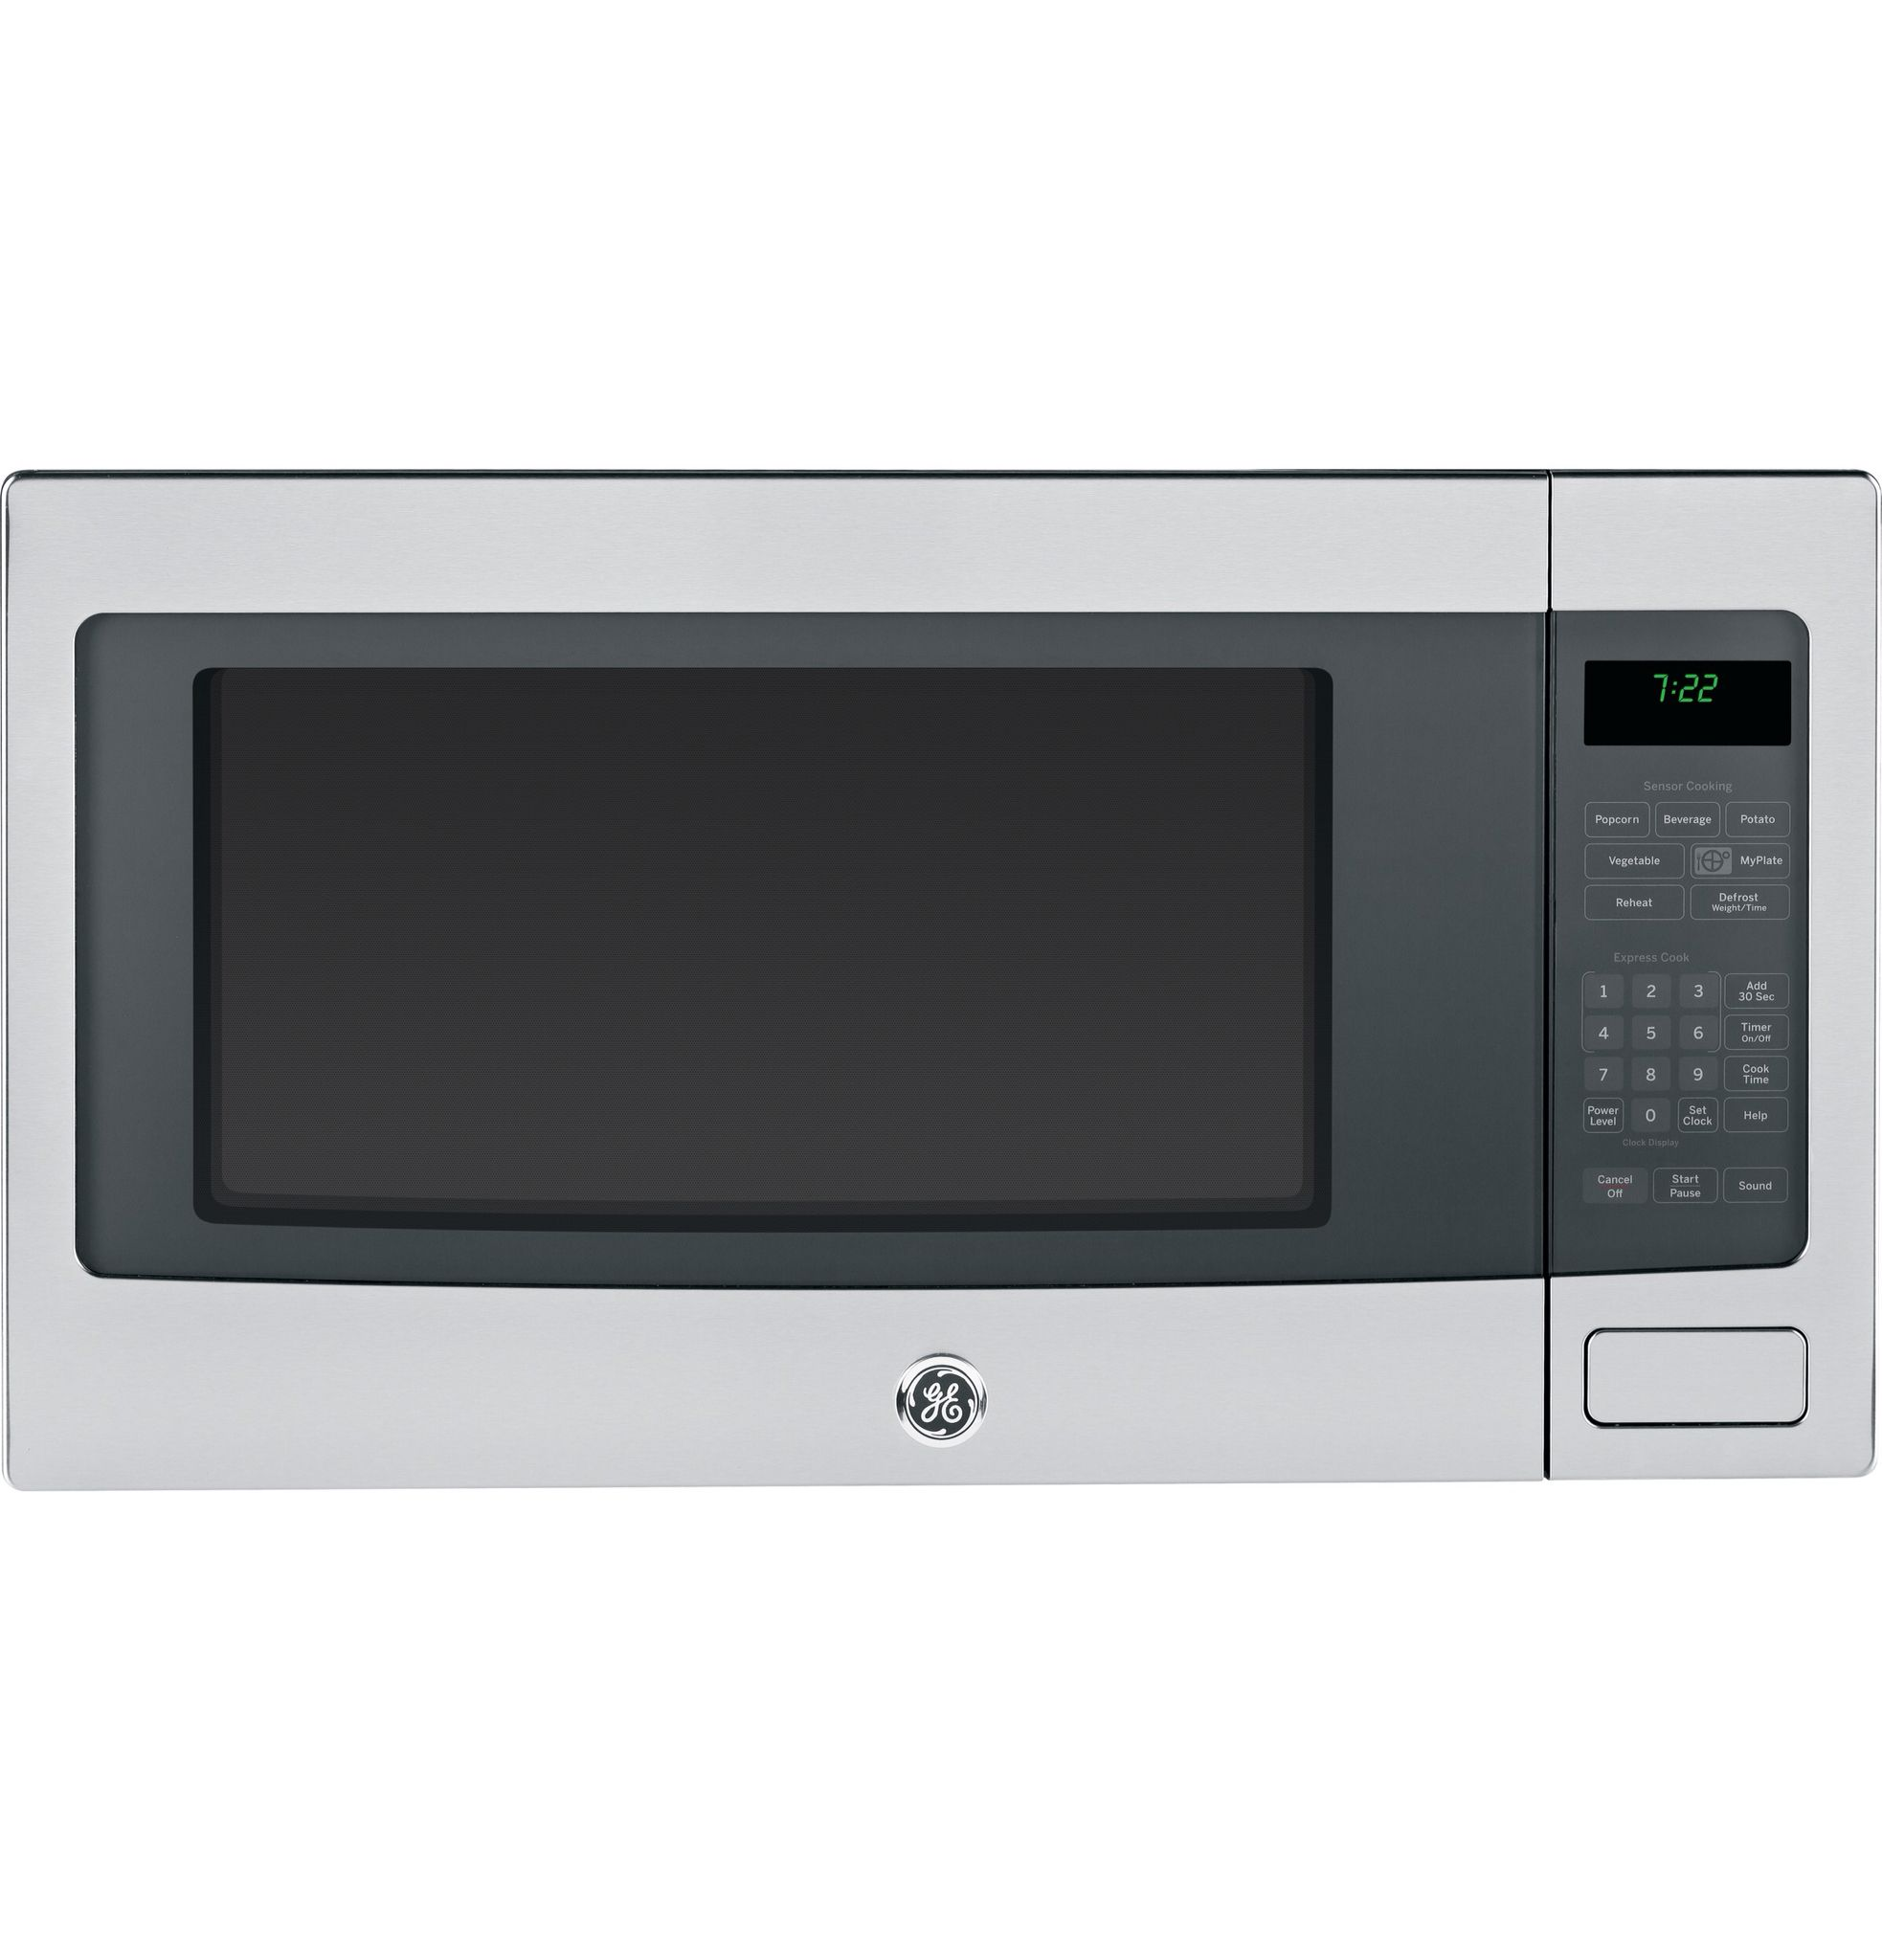 Ge Profile Microwave Built In Peb7226sf With Jx7230sf Trim Kit 30 Inch Countertop Ovenmicrowave Stainless Steelcountertop